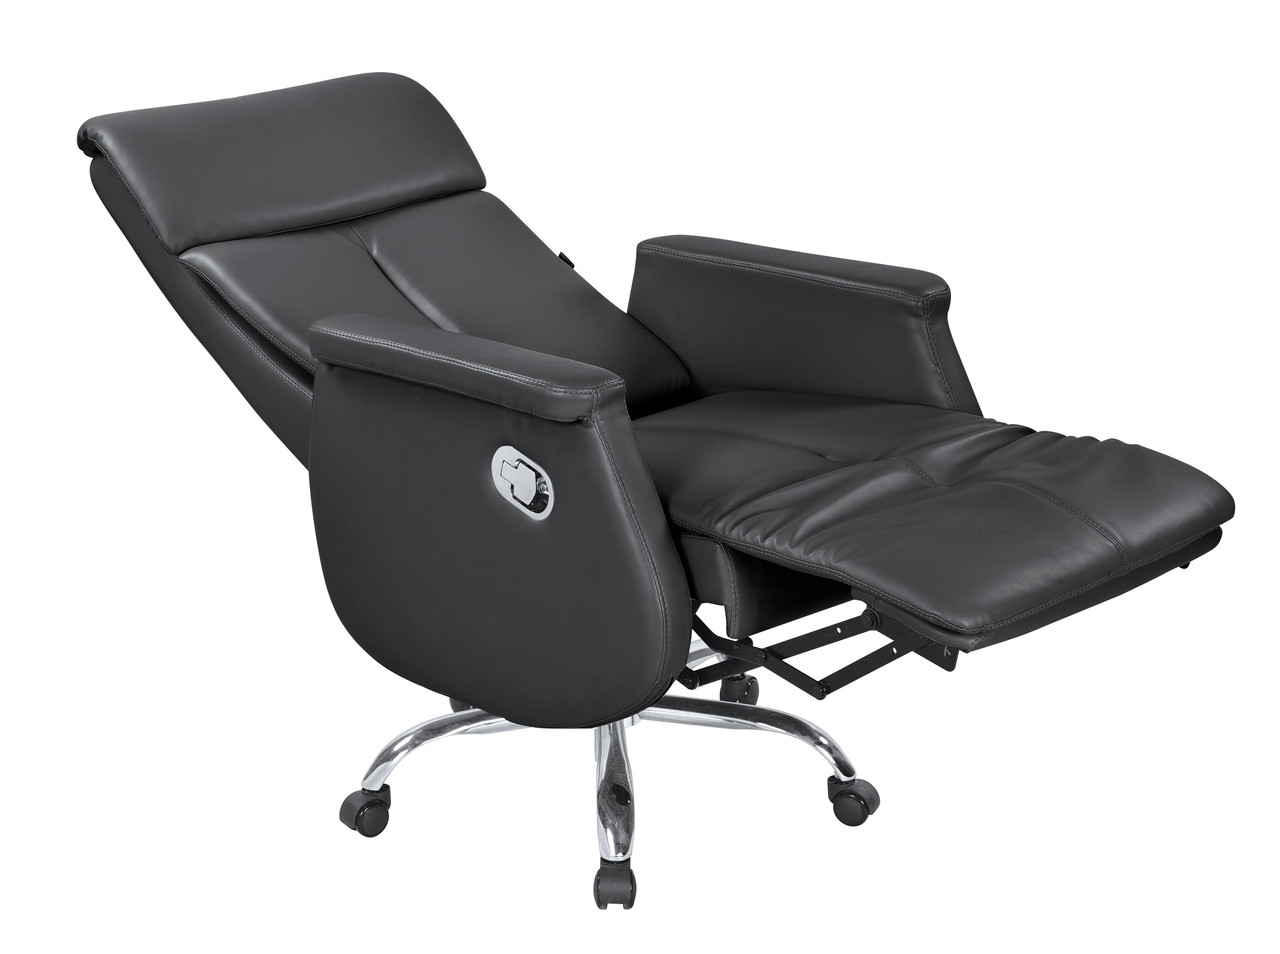 InStyleModern Malina Executive Office Chair Recliner